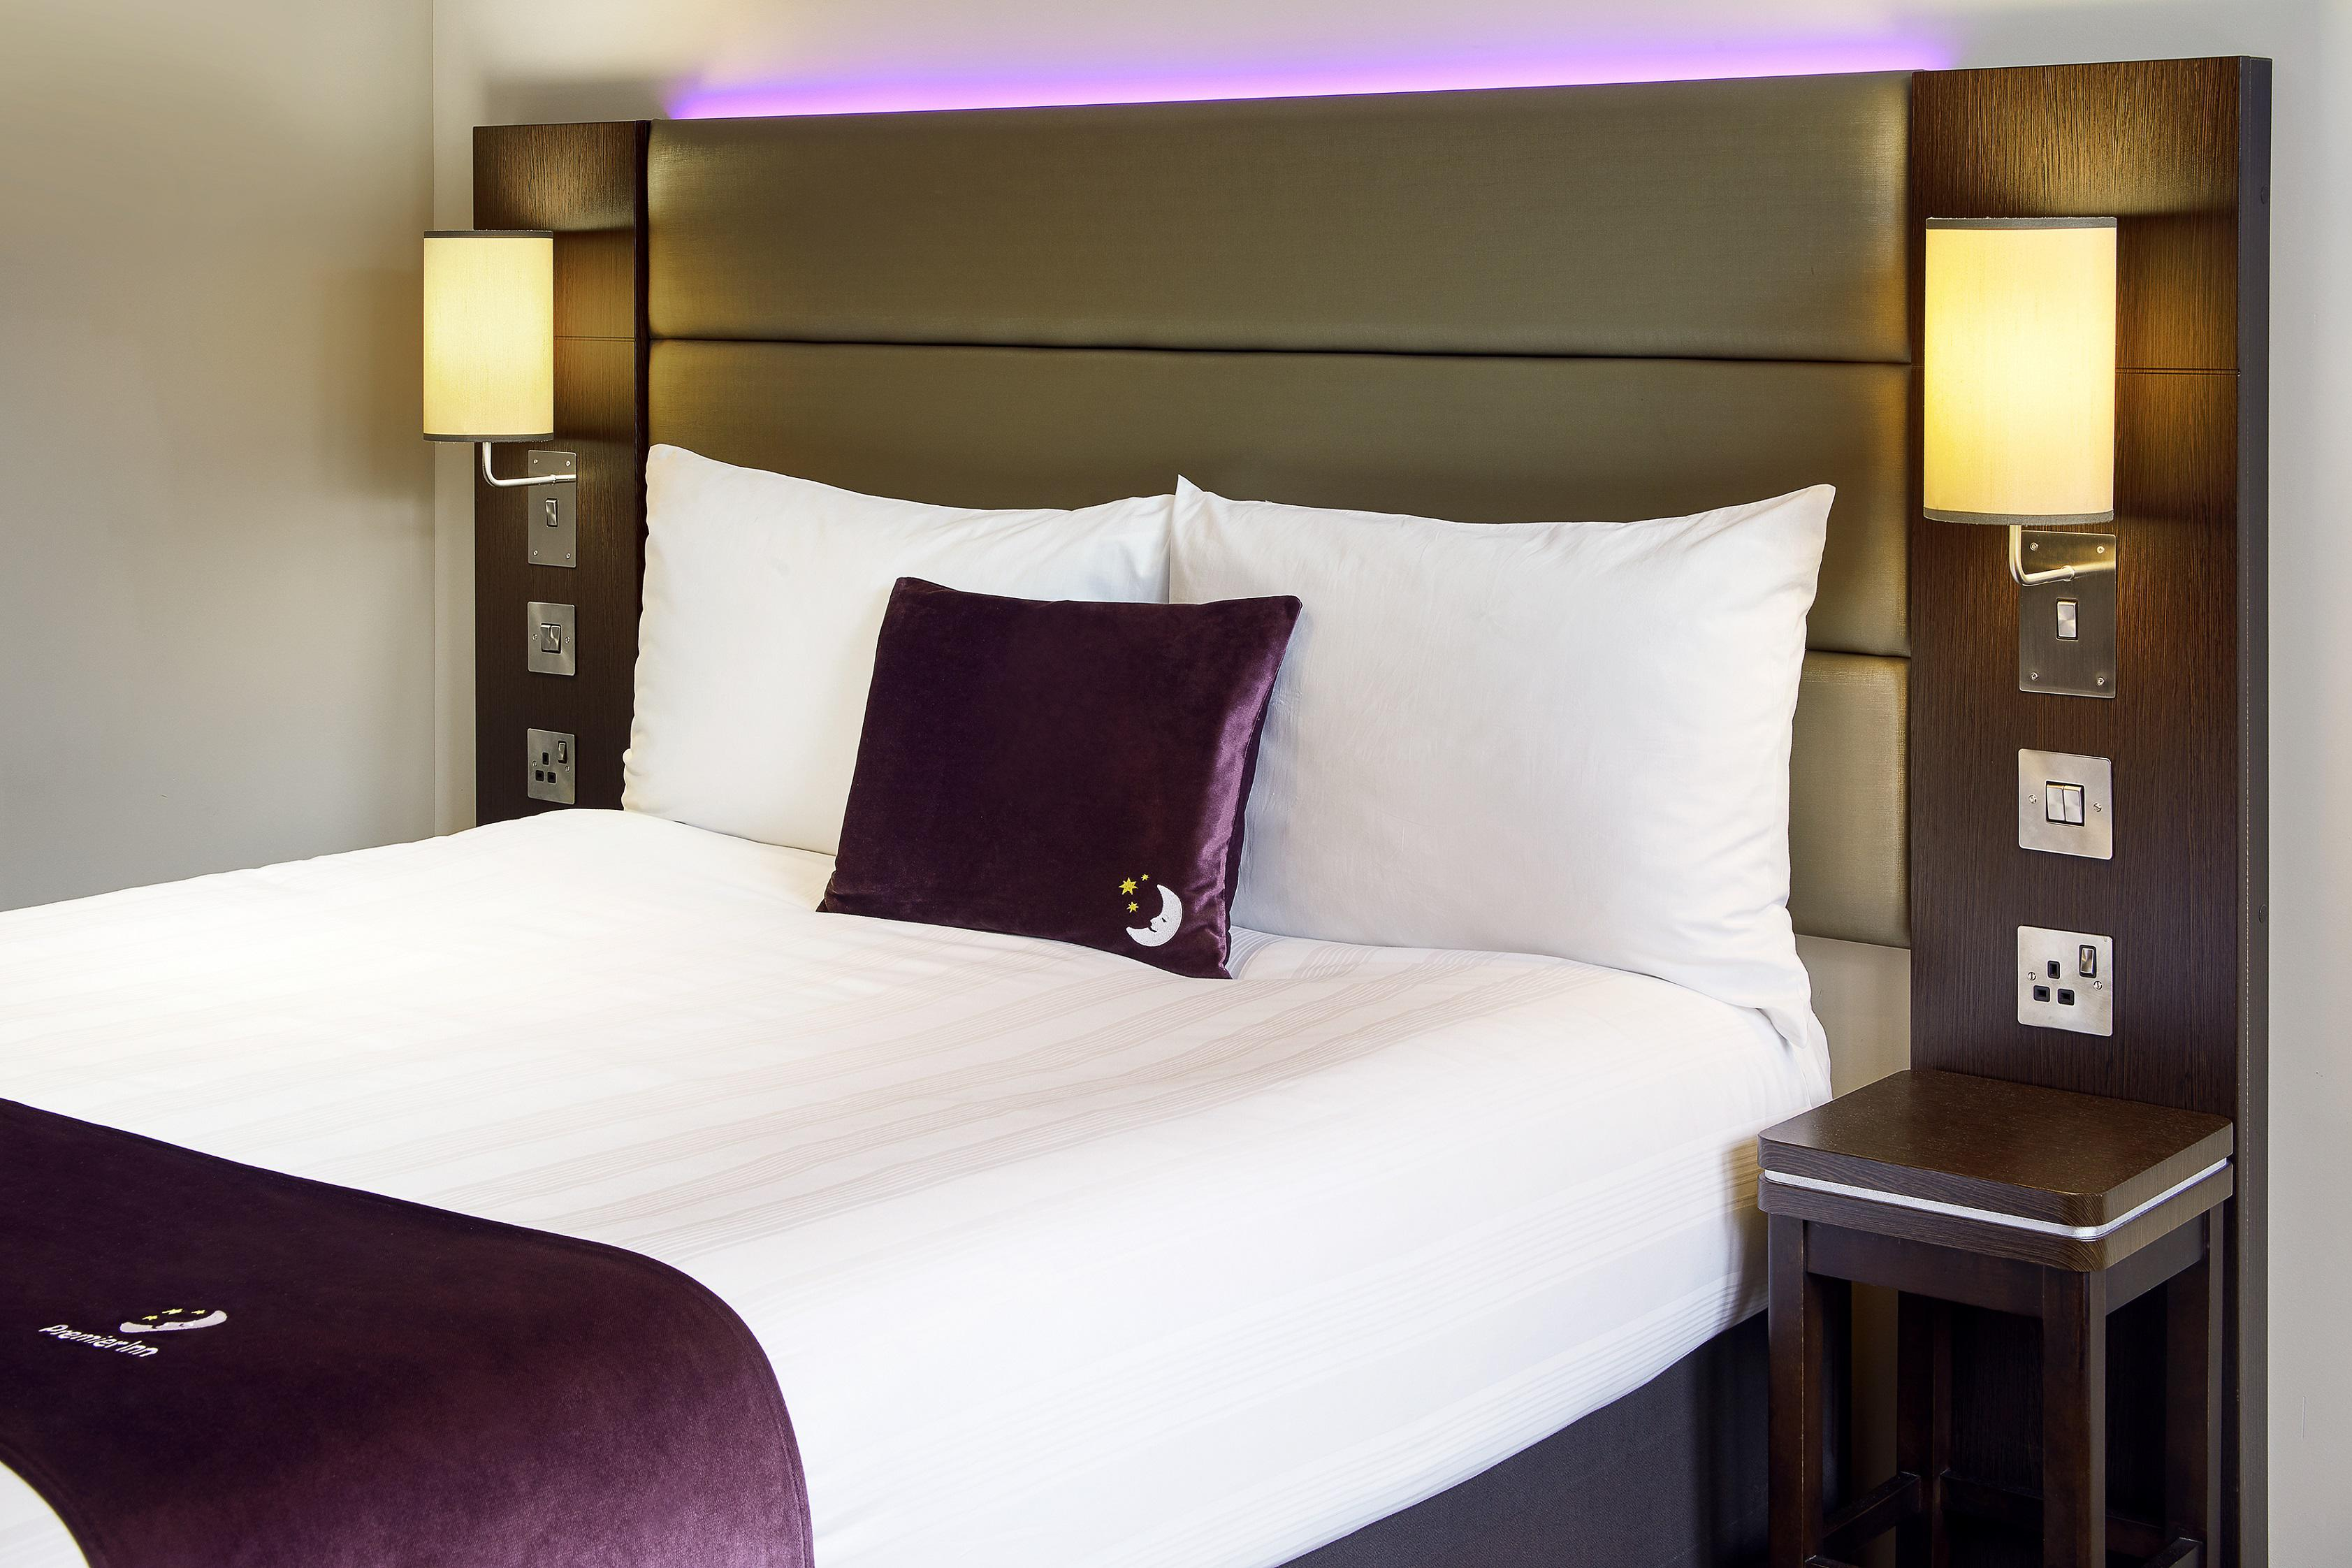 Premier Inn bed Premier Inn London Southwark (Bankside) hotel London 03333 211274